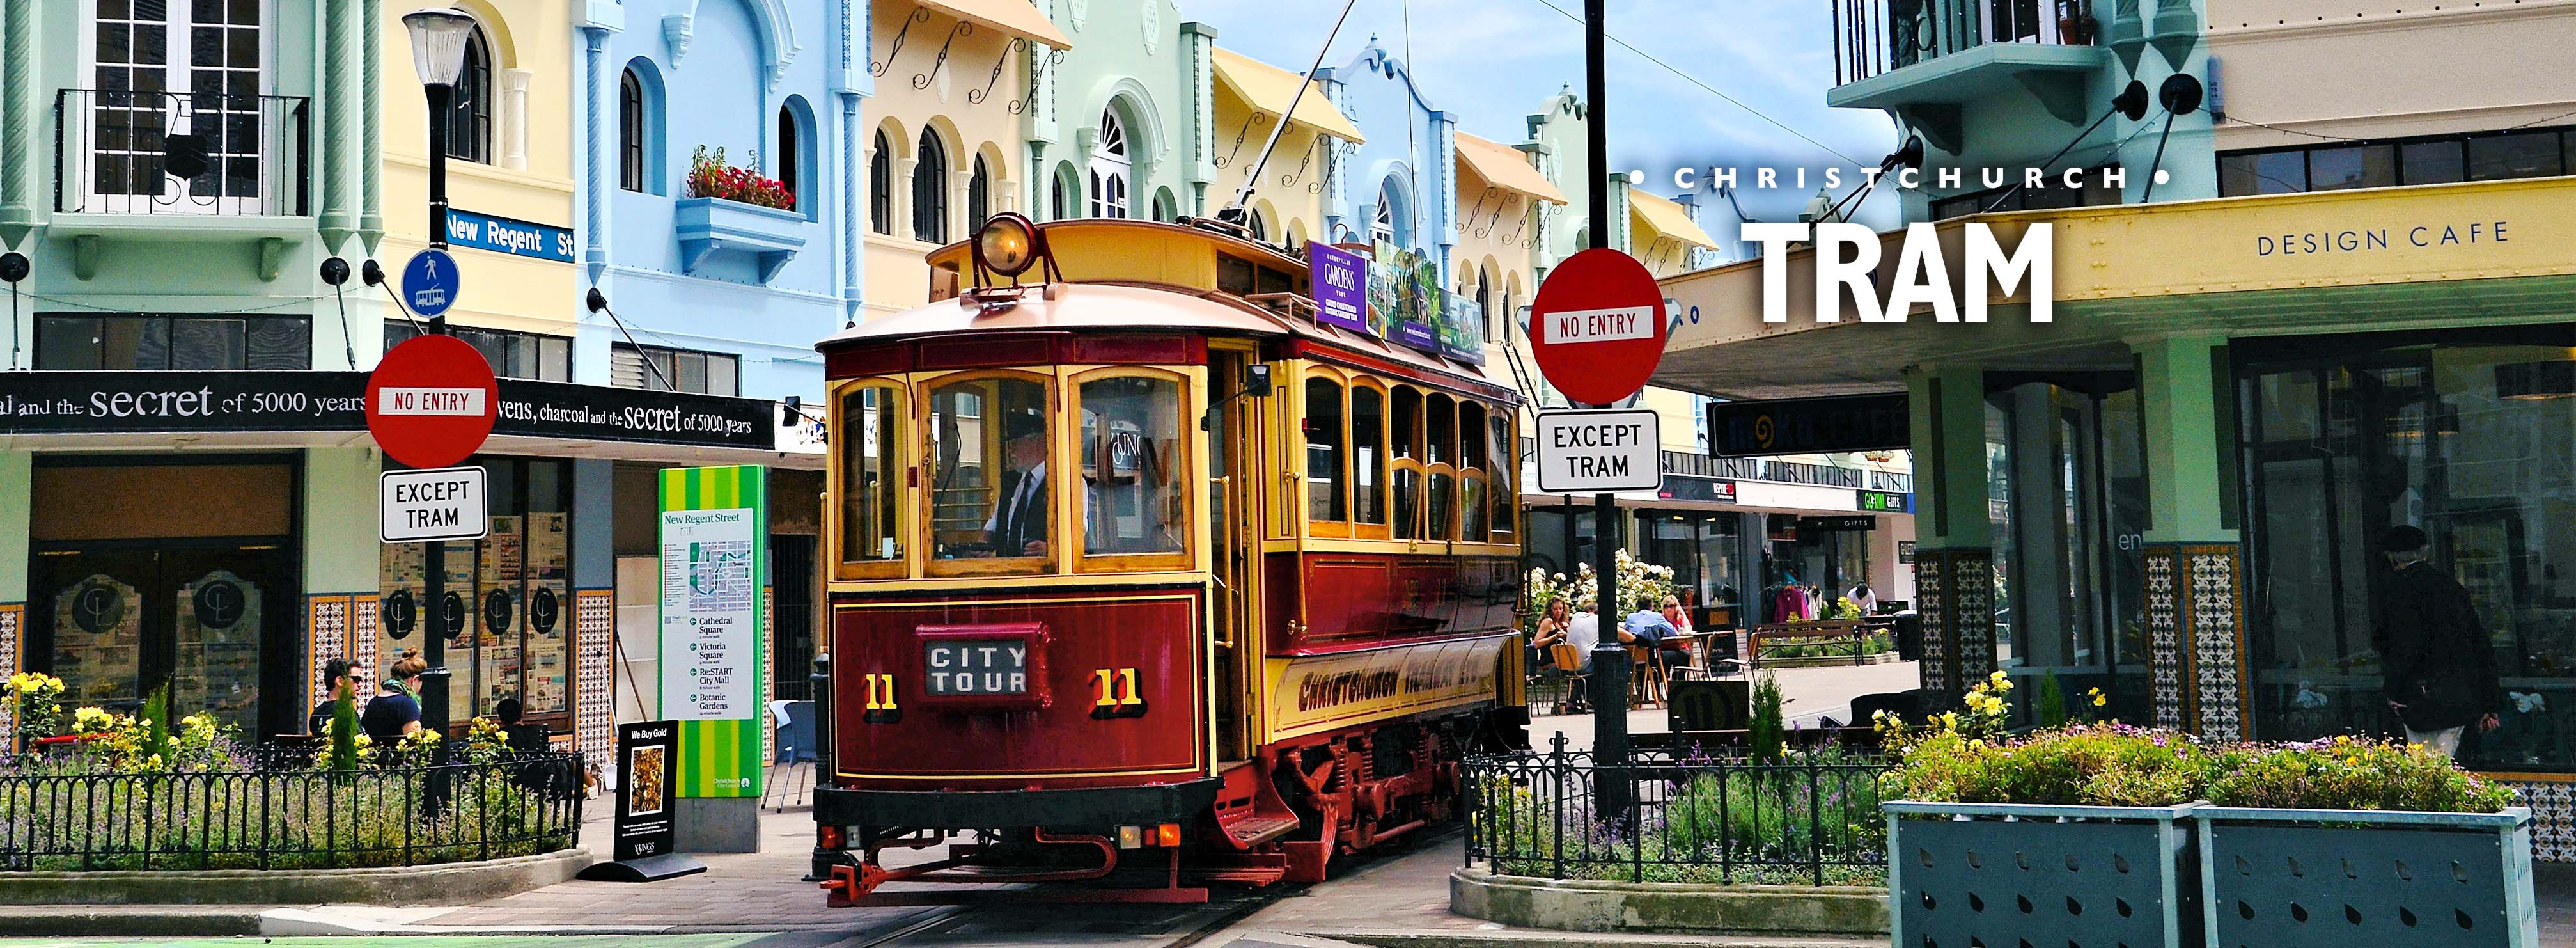 Amazing Tram Pictures & Backgrounds